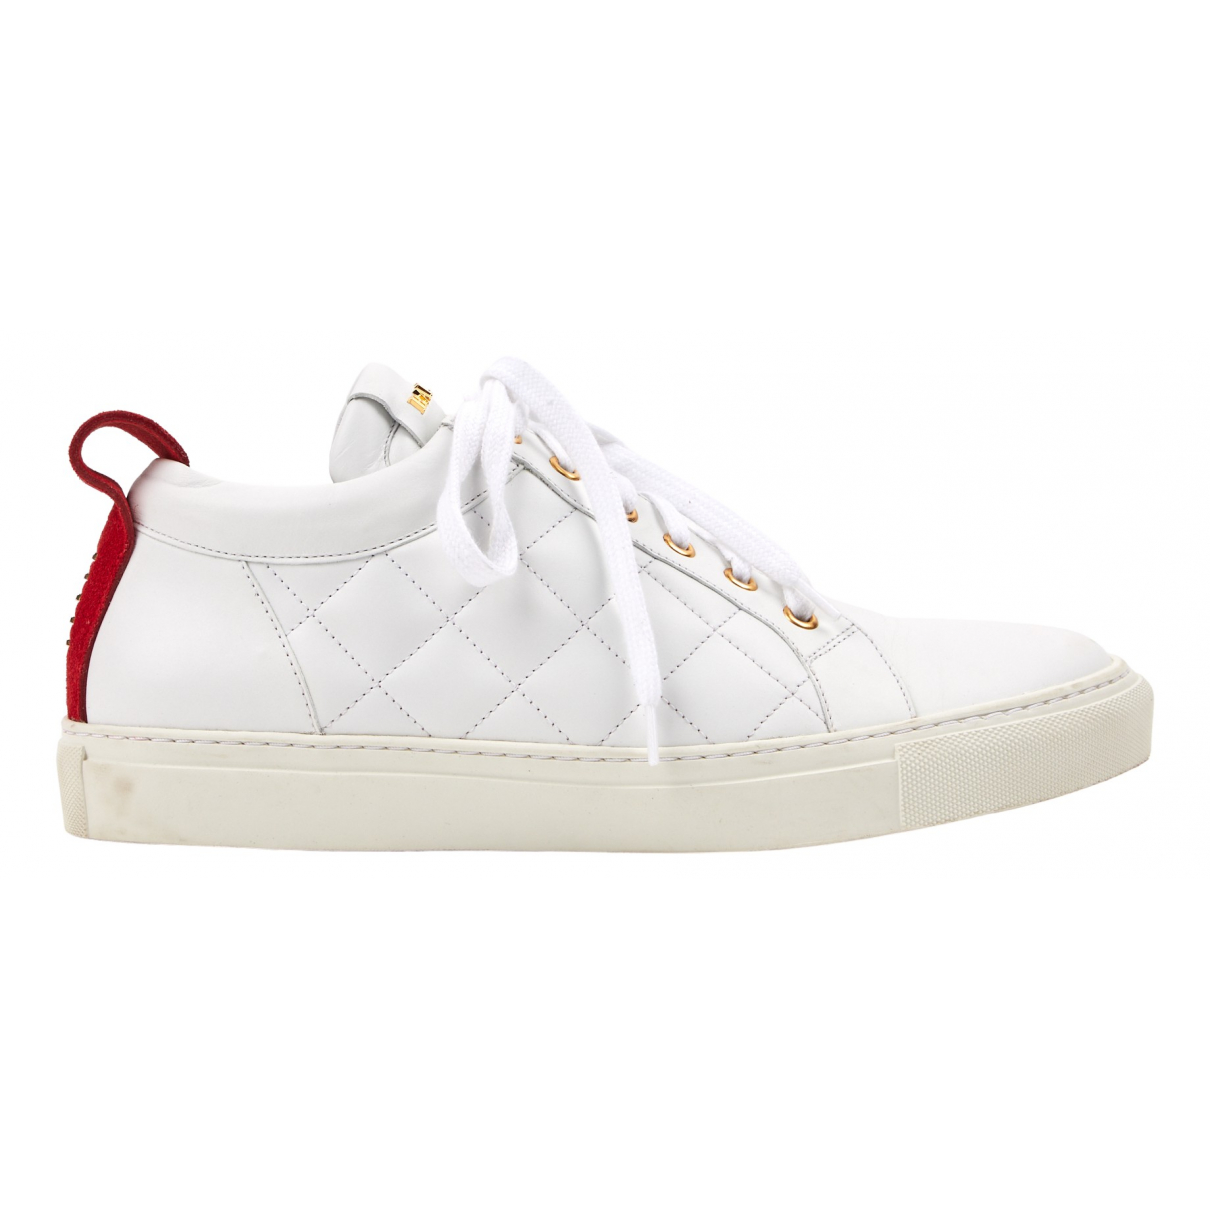 Balmain \N Sneakers in  Weiss Leder